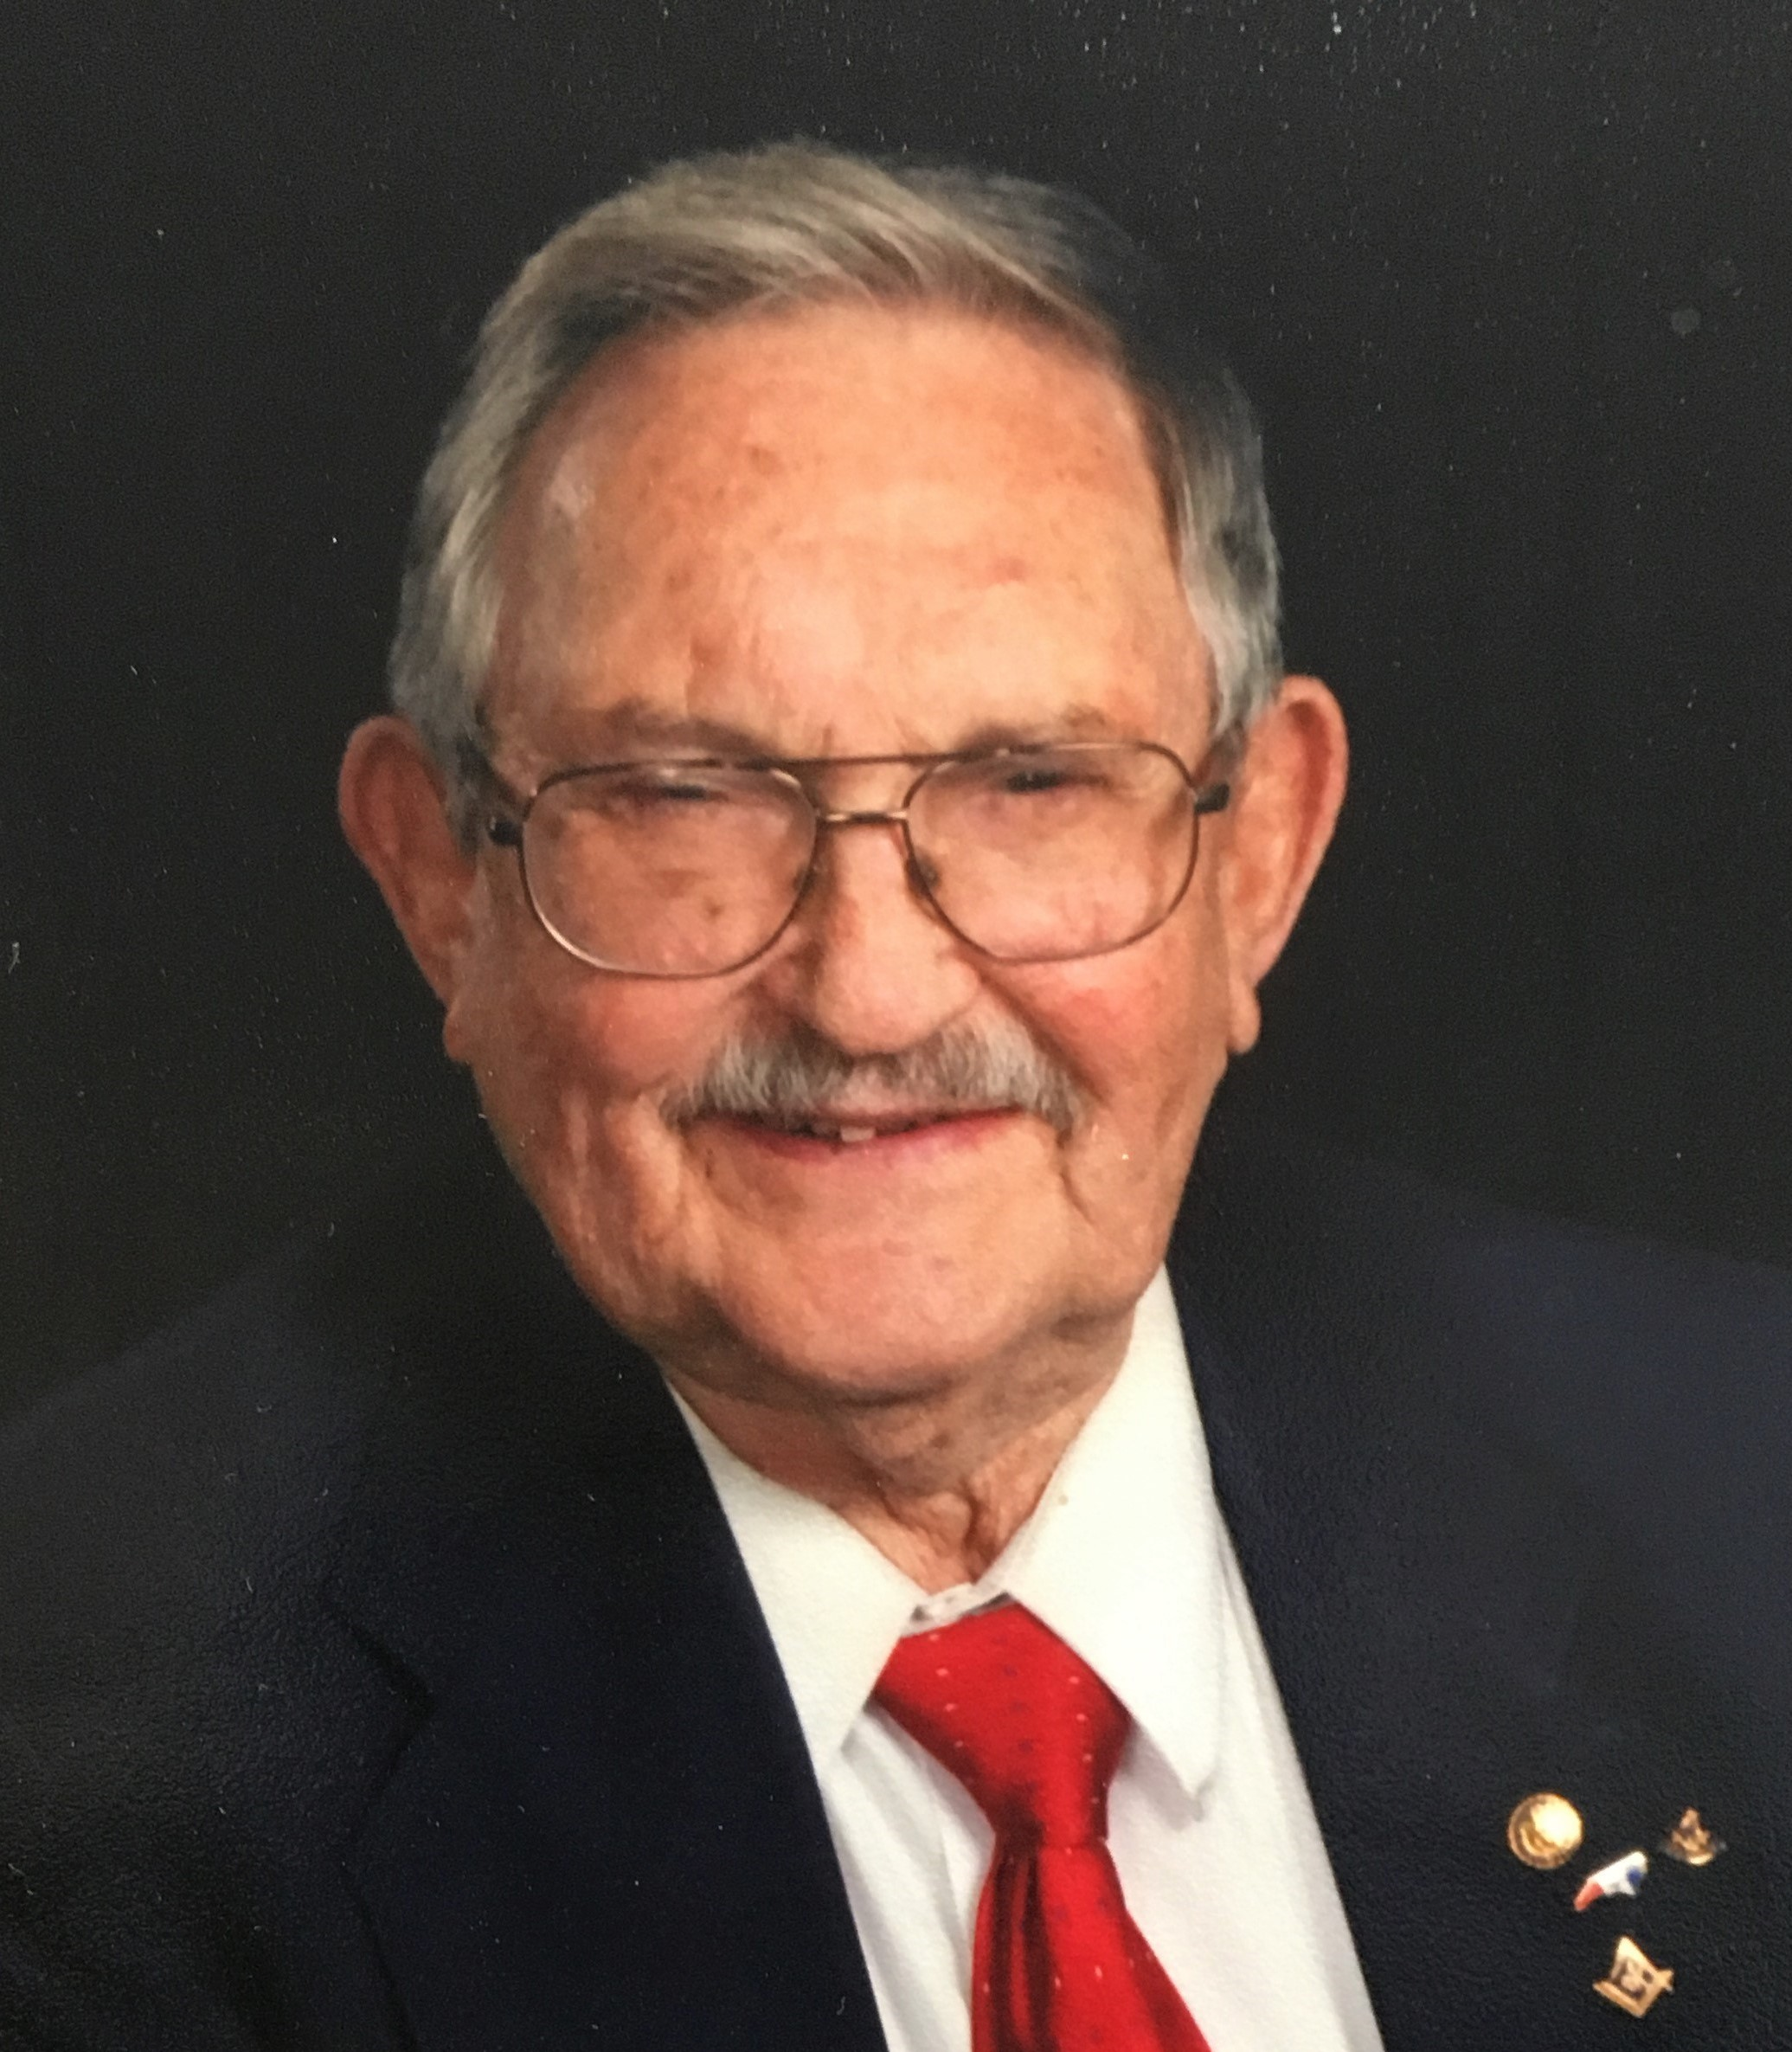 George William Godsey, 84